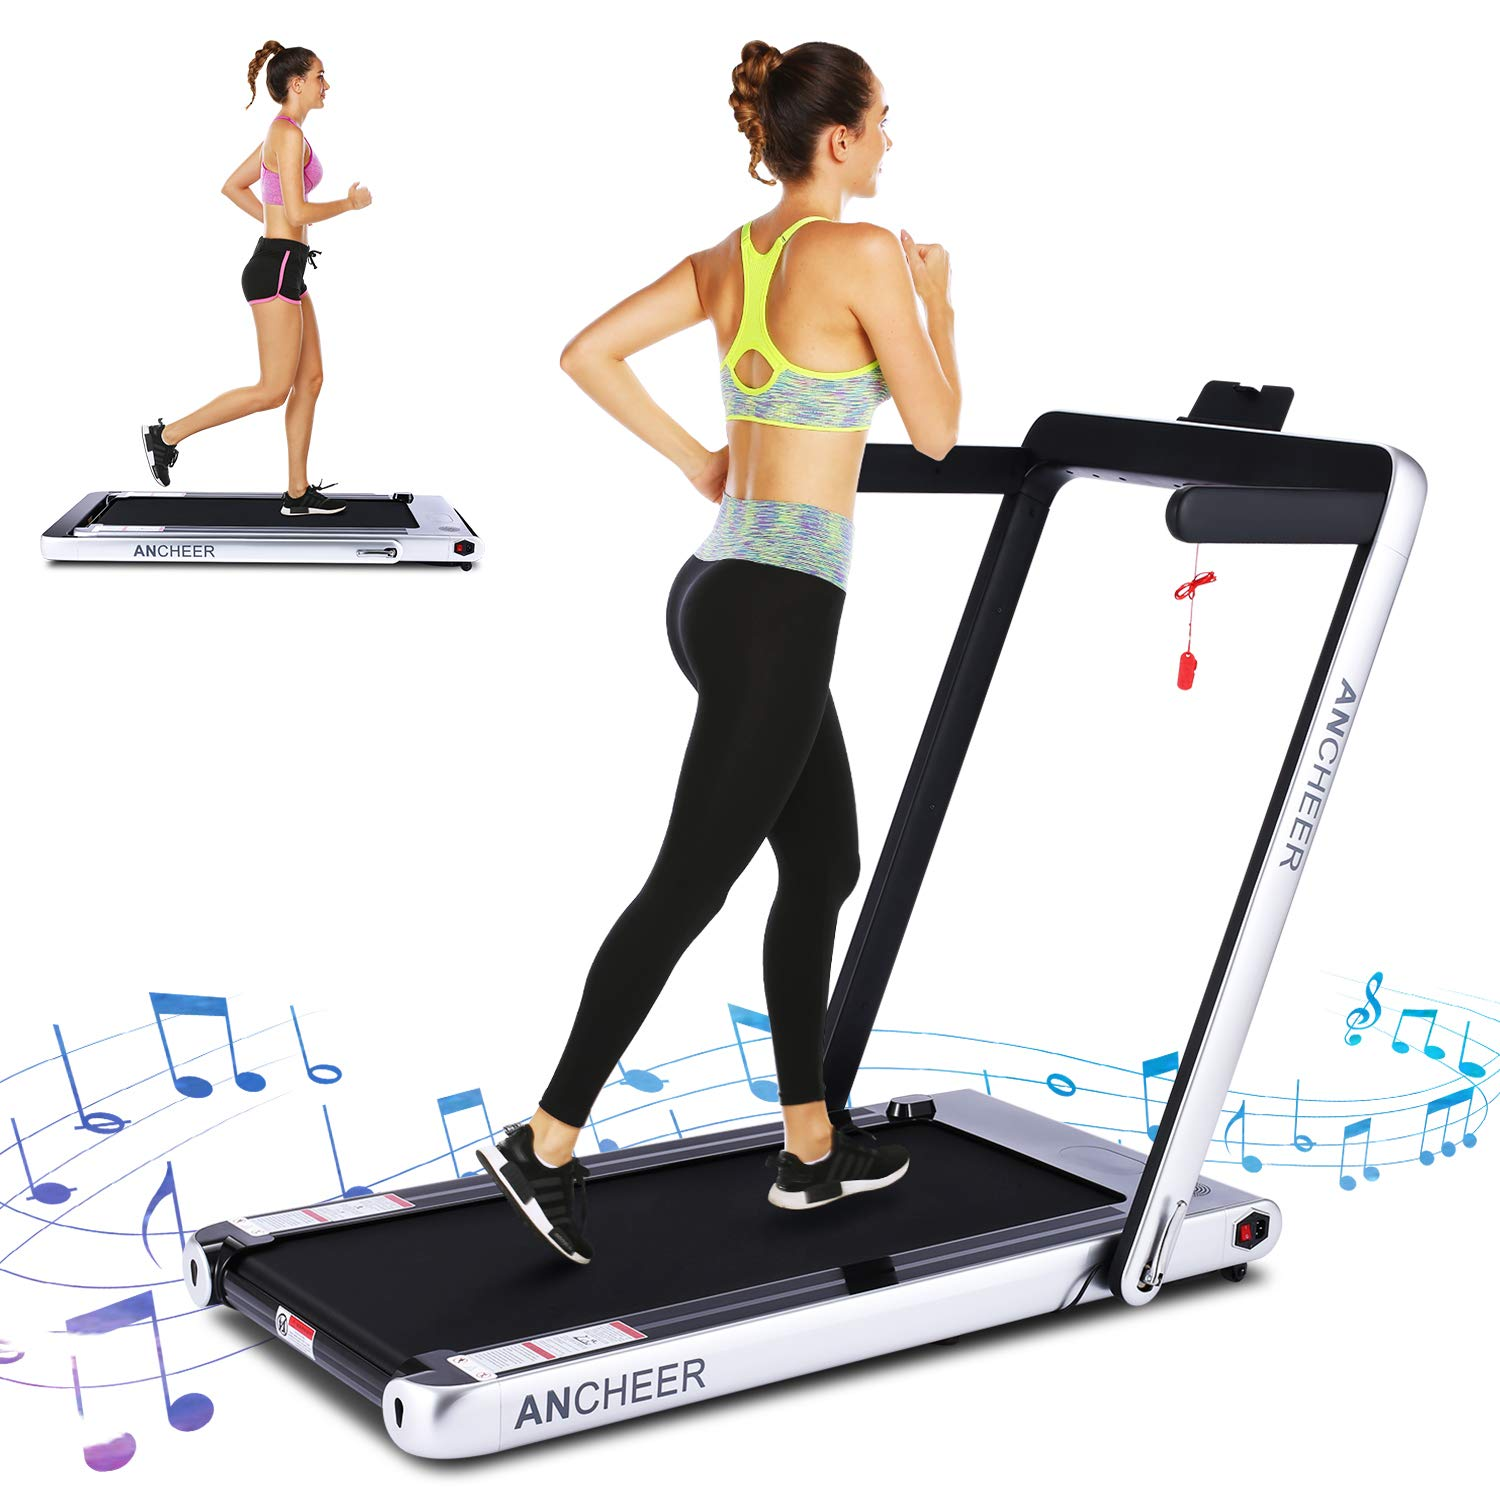 ANCHEER Treadmill Electric Motorized Bluetooth